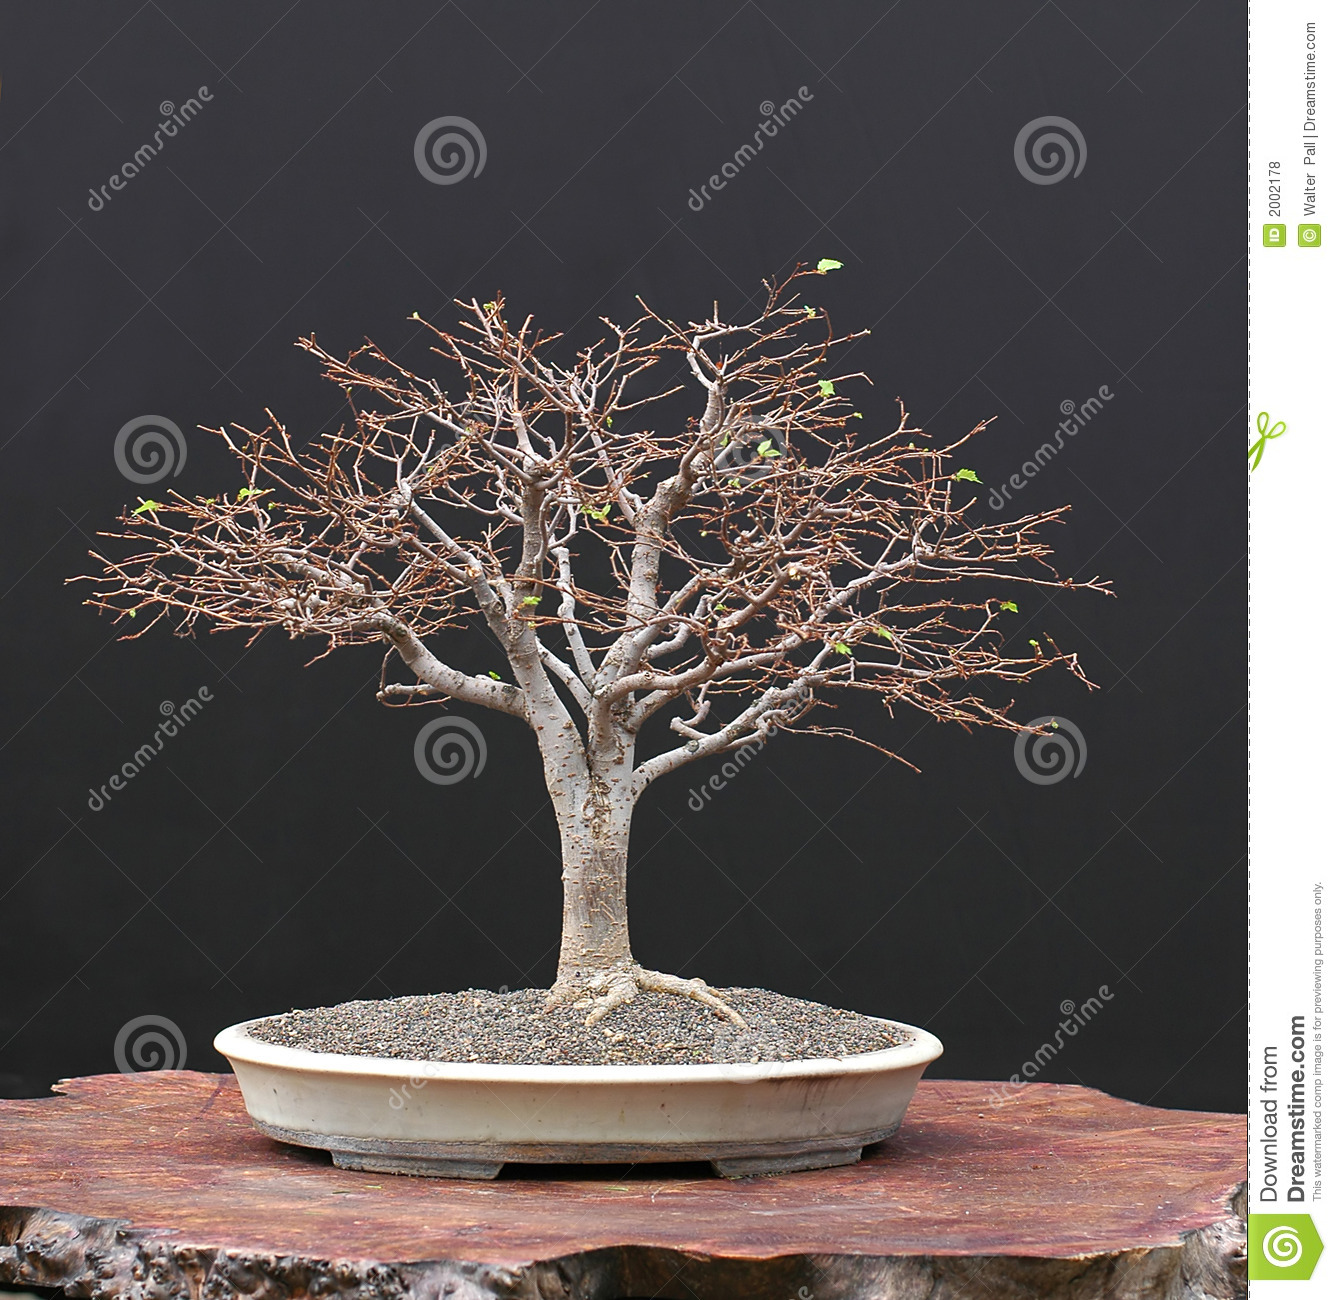 302 Zelkova Photos Free Royalty Free Stock Photos From Dreamstime